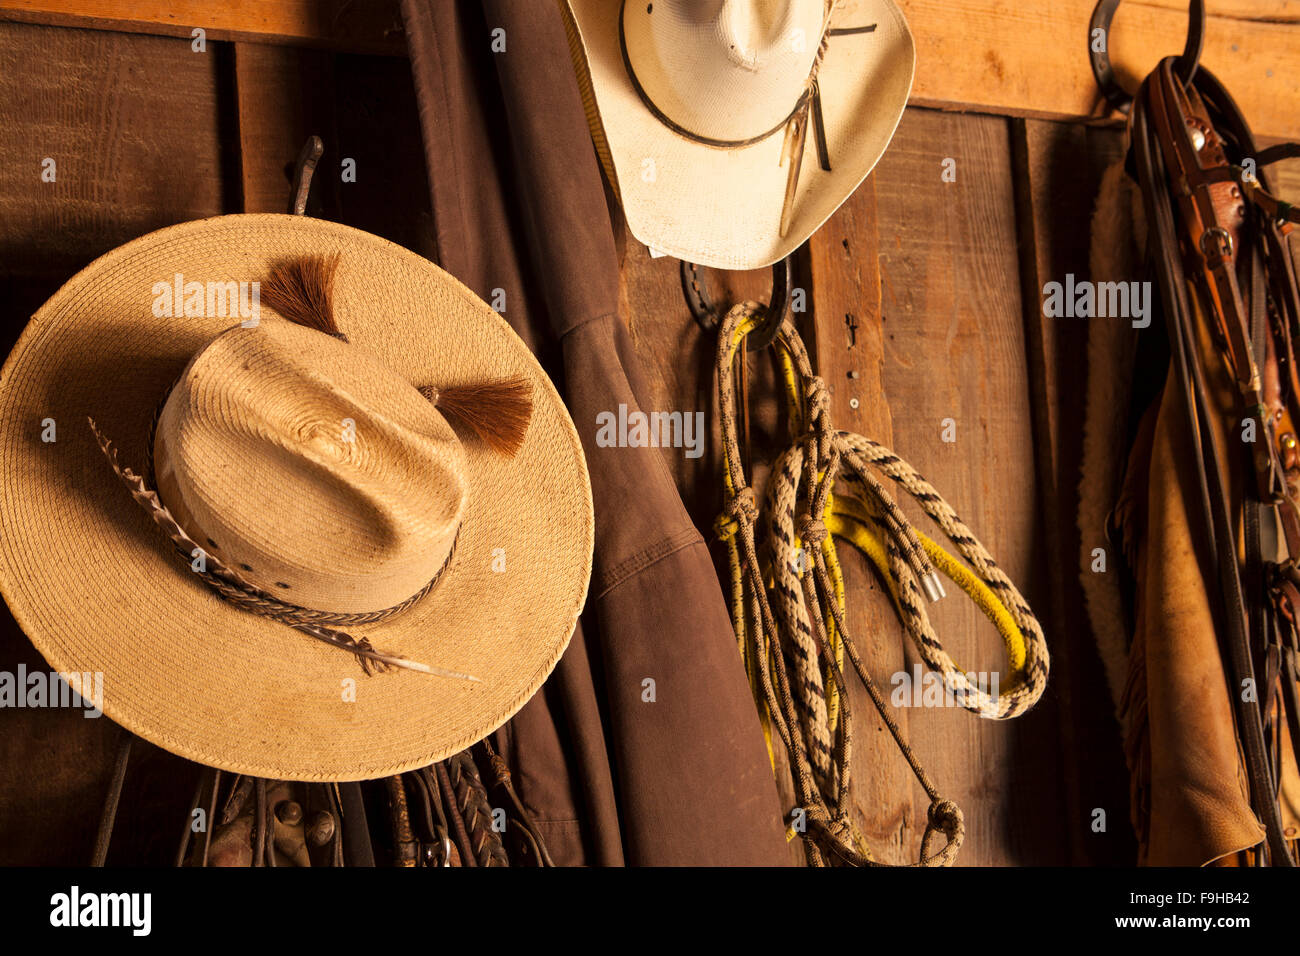 stetsons hanging in tack barn, Alisal Guest Ranch, Solvang, California - Stock Image